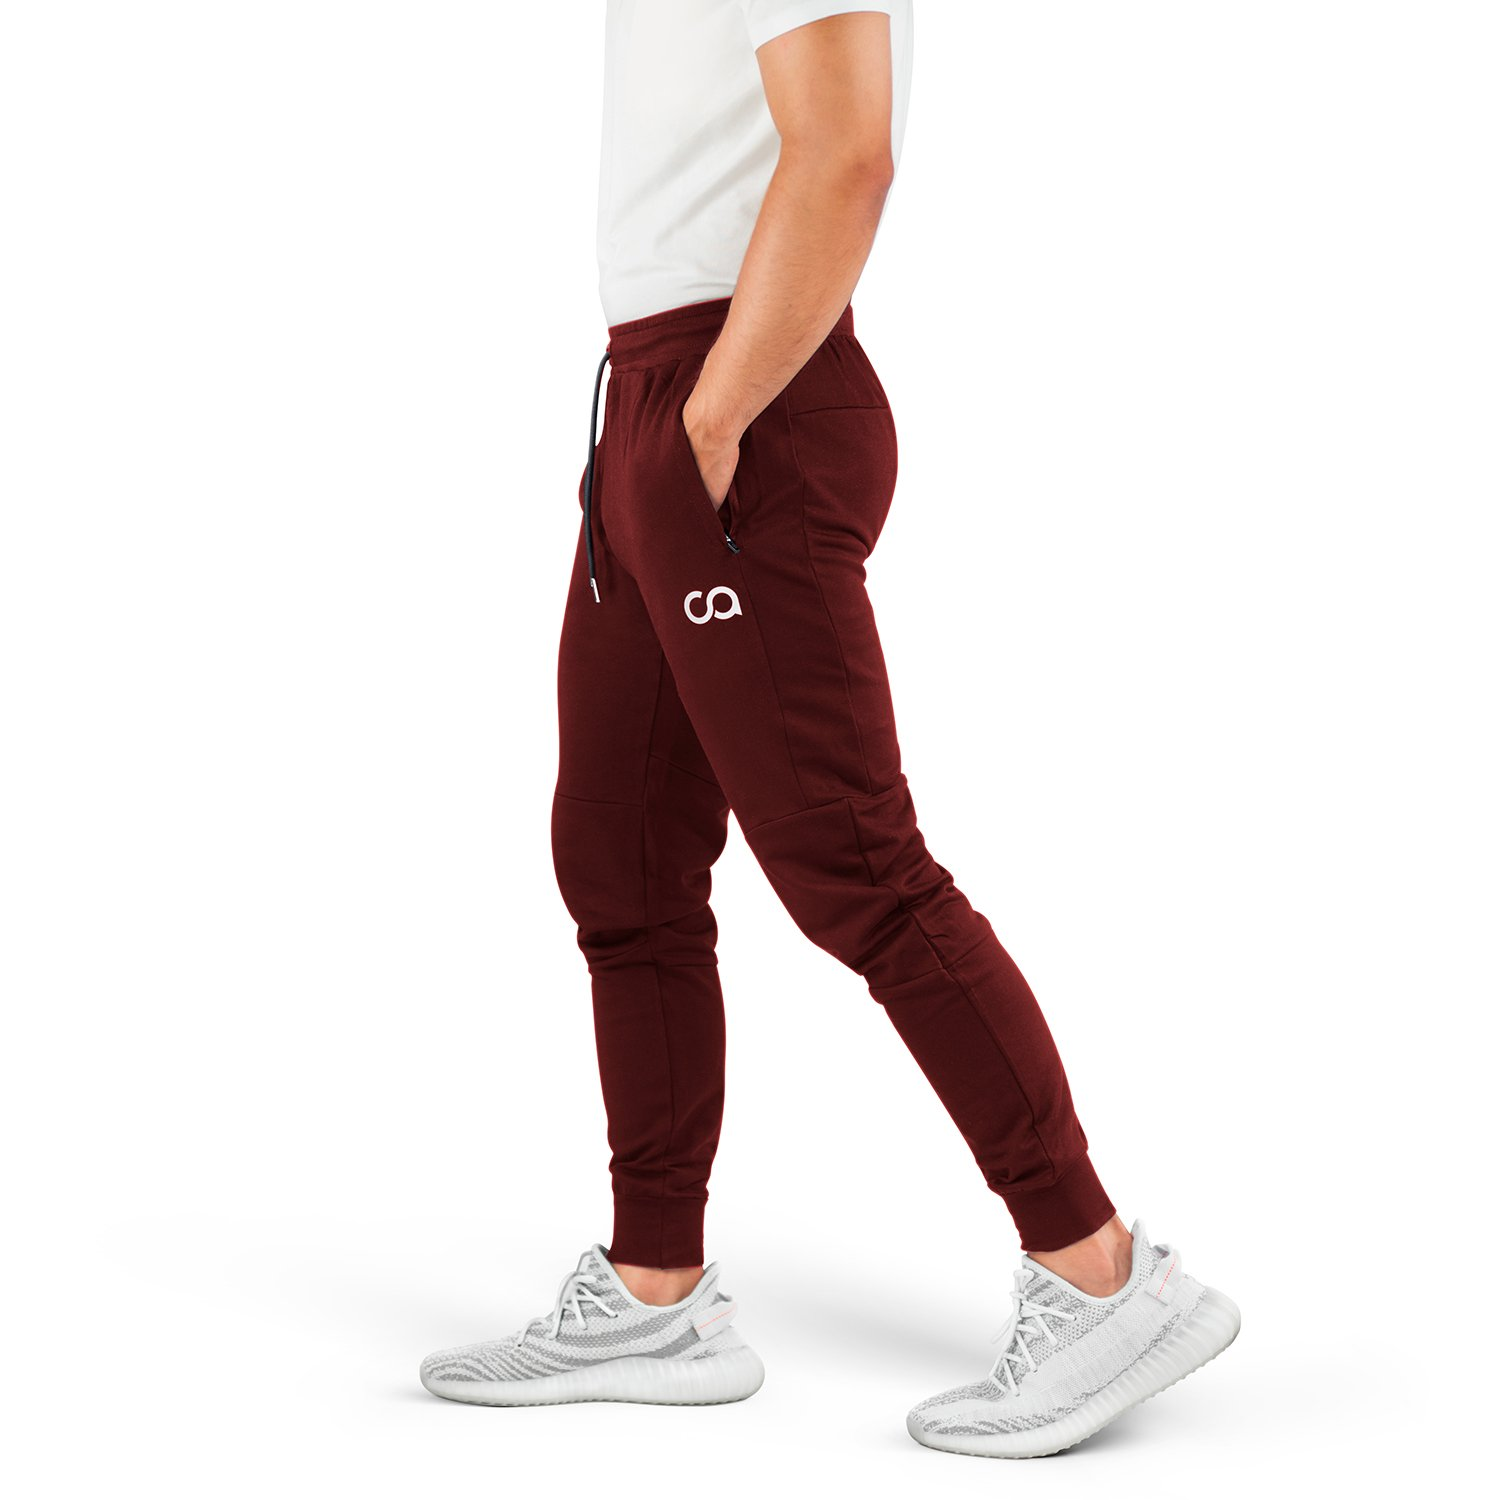 Contour Athletics Men's Joggers (Cruise) Sweatpants Men's Active Sports Running Workout Pants With Zipper Pockets (Maroon) (Large) (CA1003-LM)